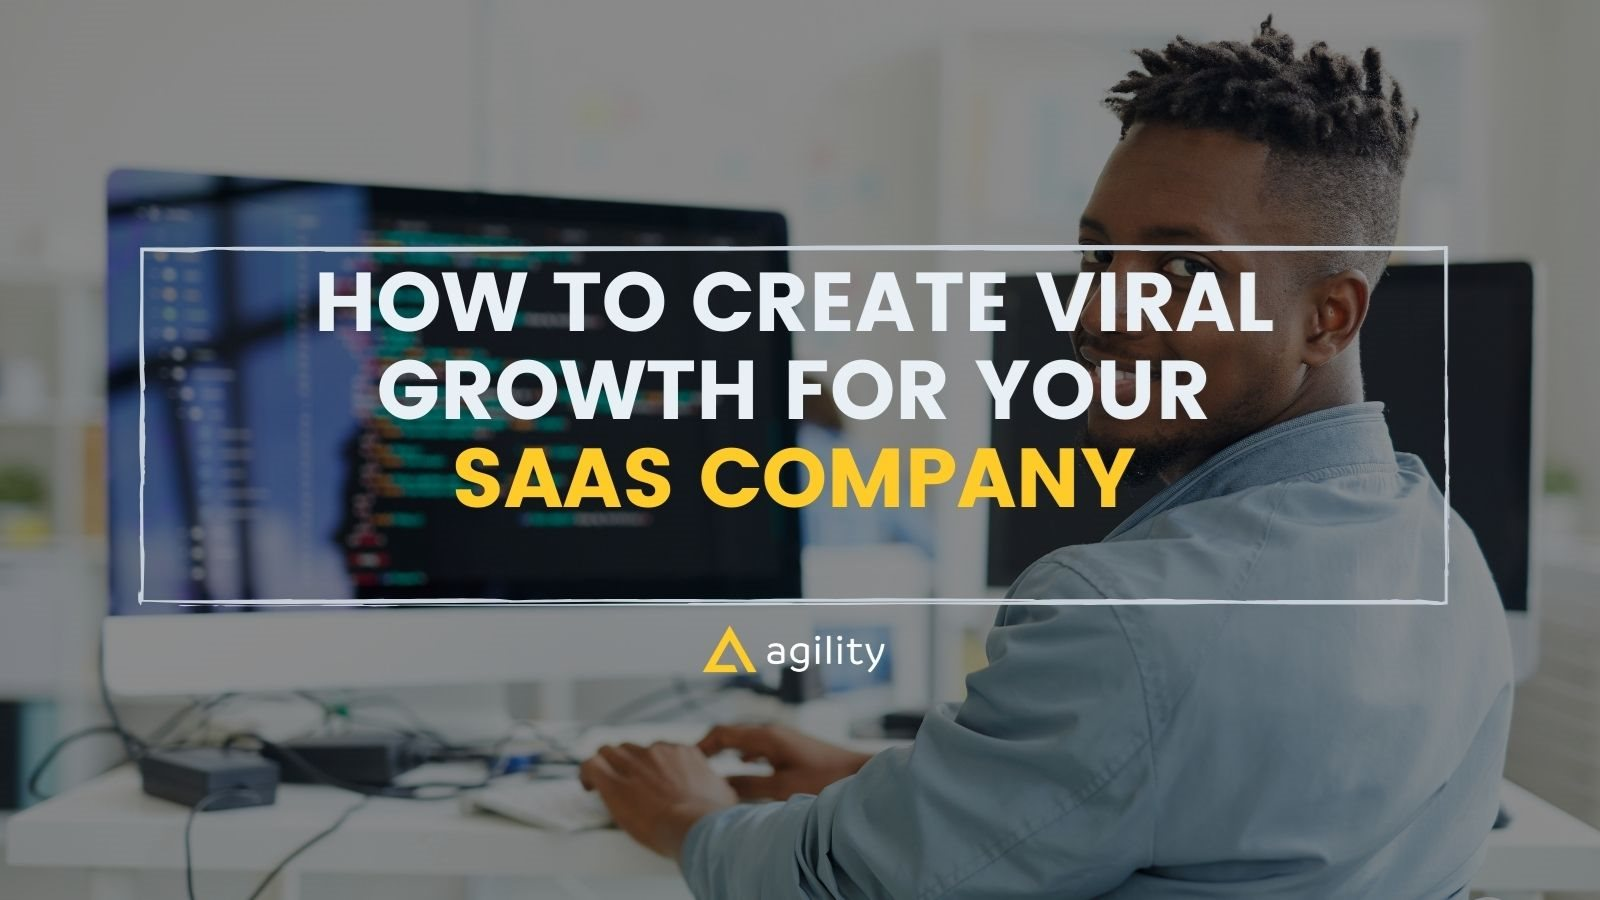 How to Create Viral Growth for Your SaaS Company